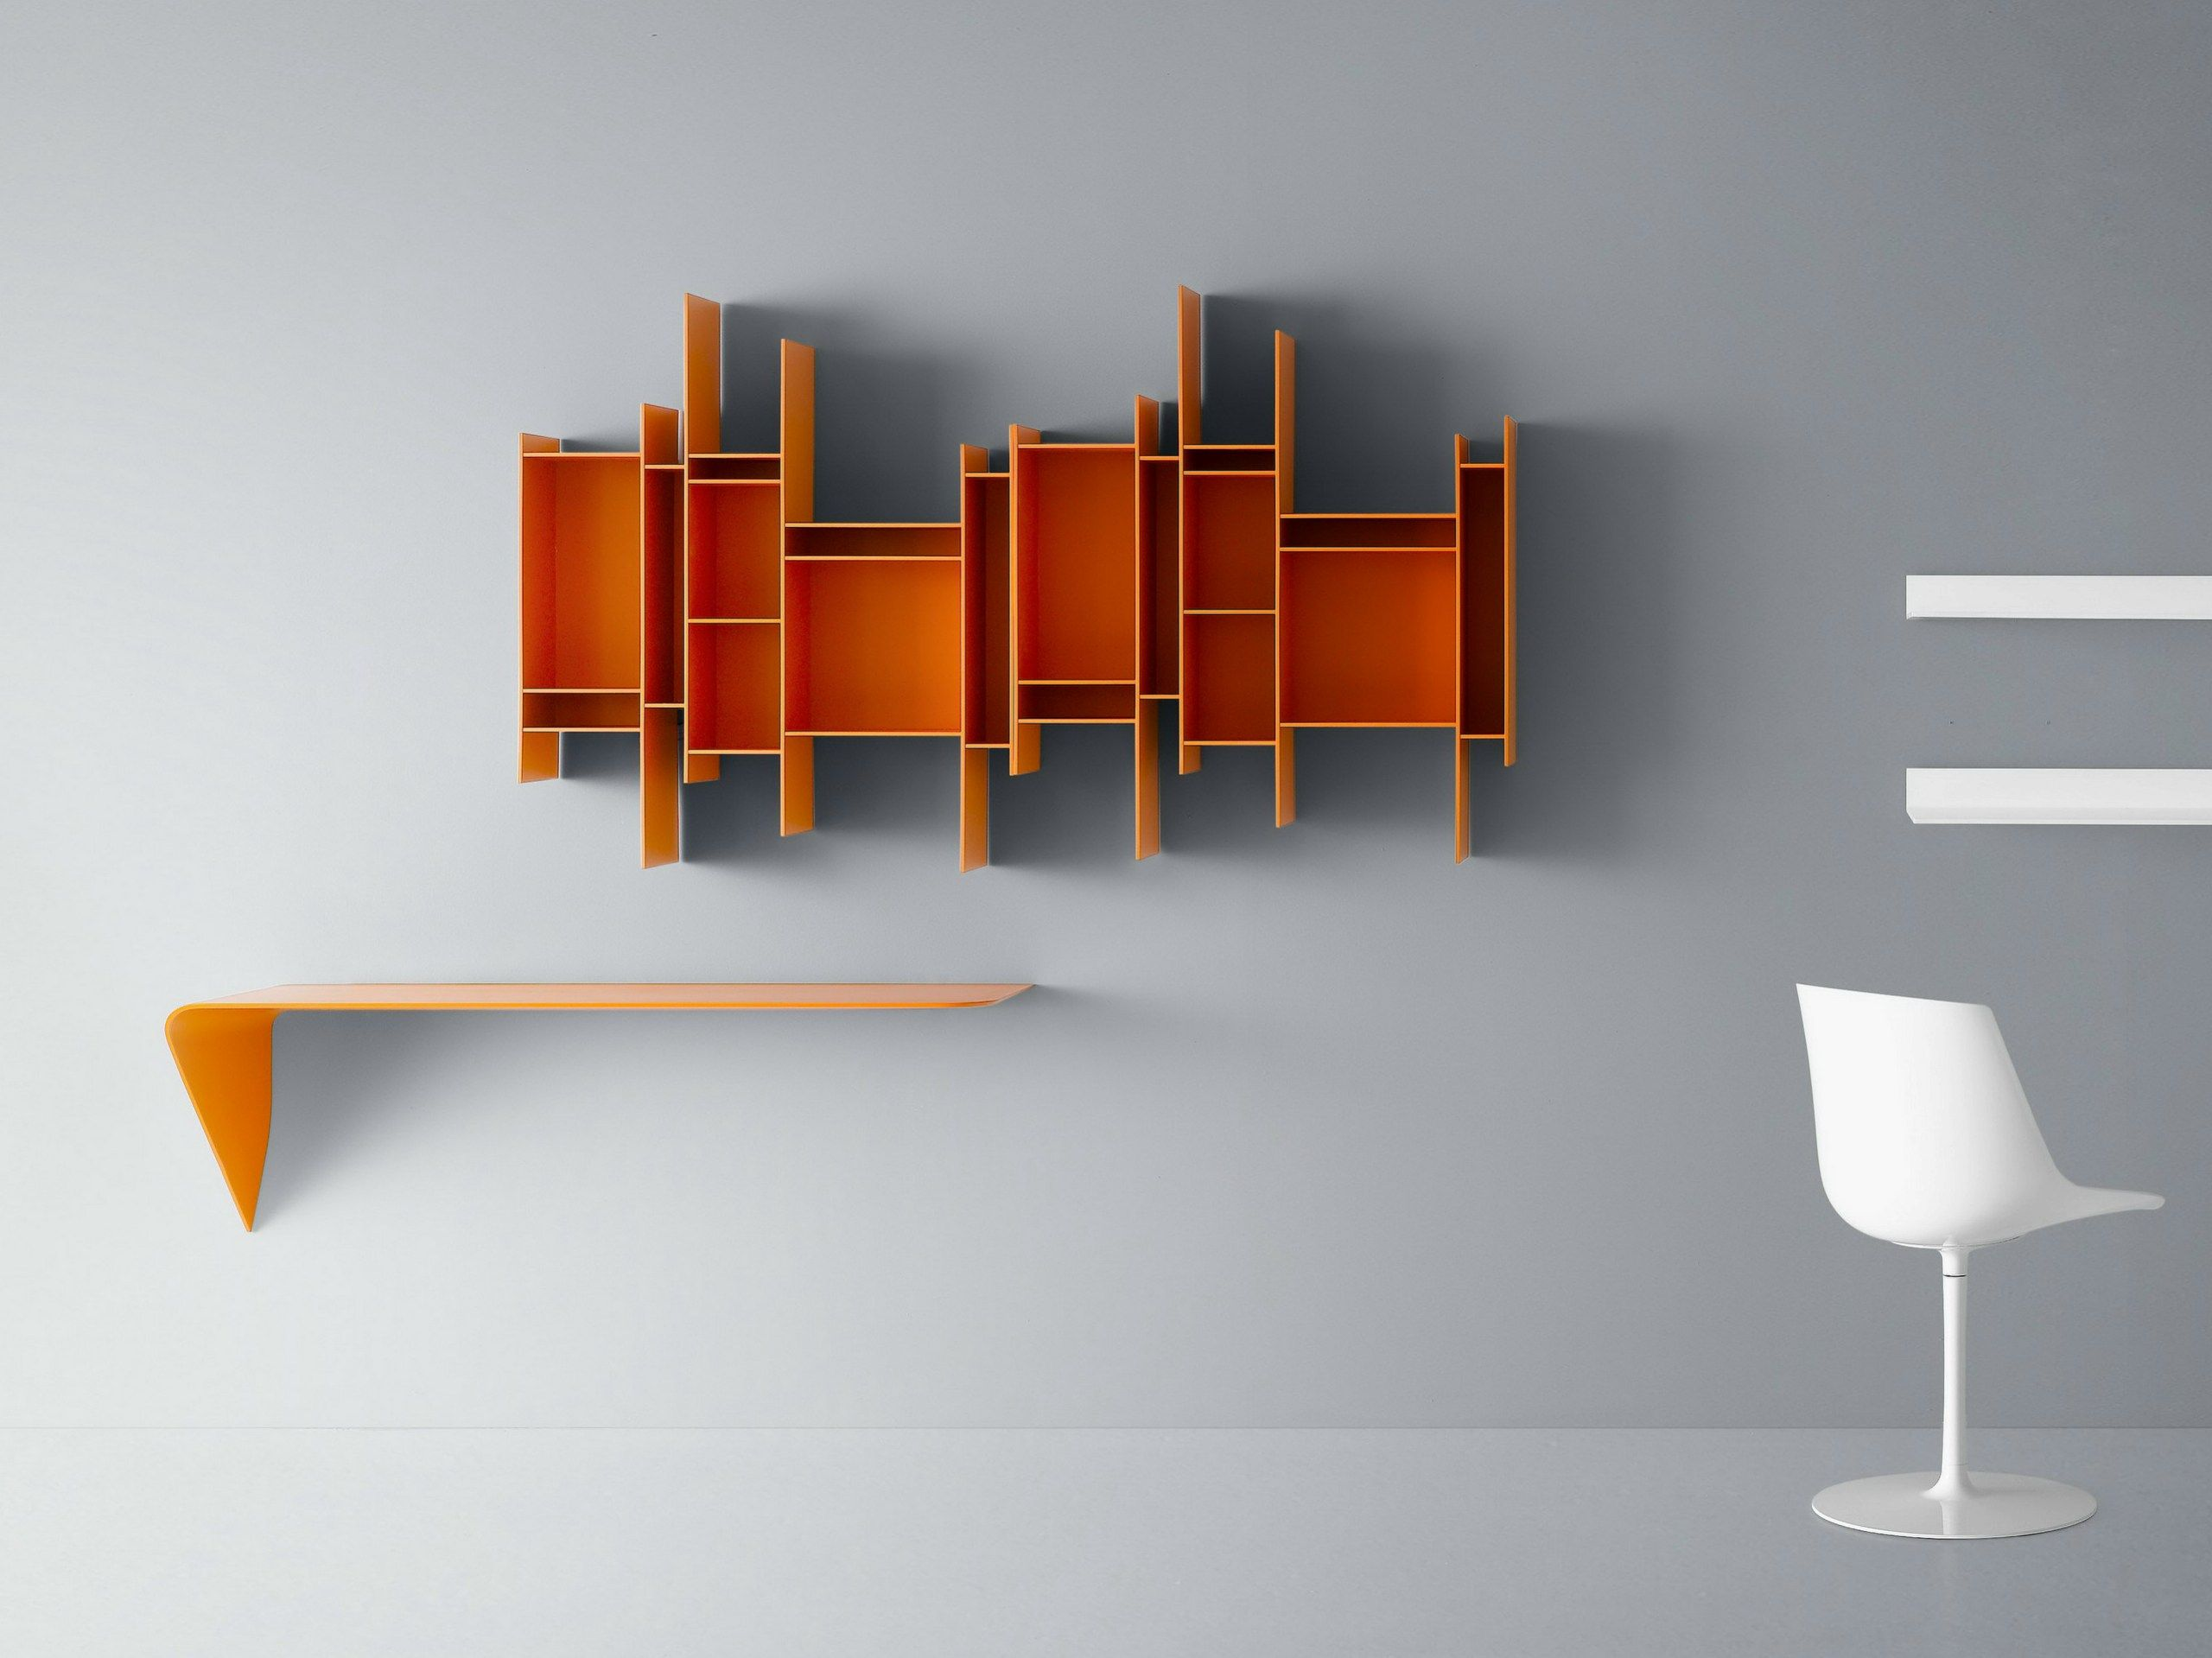 open wallmounted mdf bookcase randomito random collection by mdf  - open wallmounted mdf bookcase randomito random collection by mdf italia design neuland industriaedesign